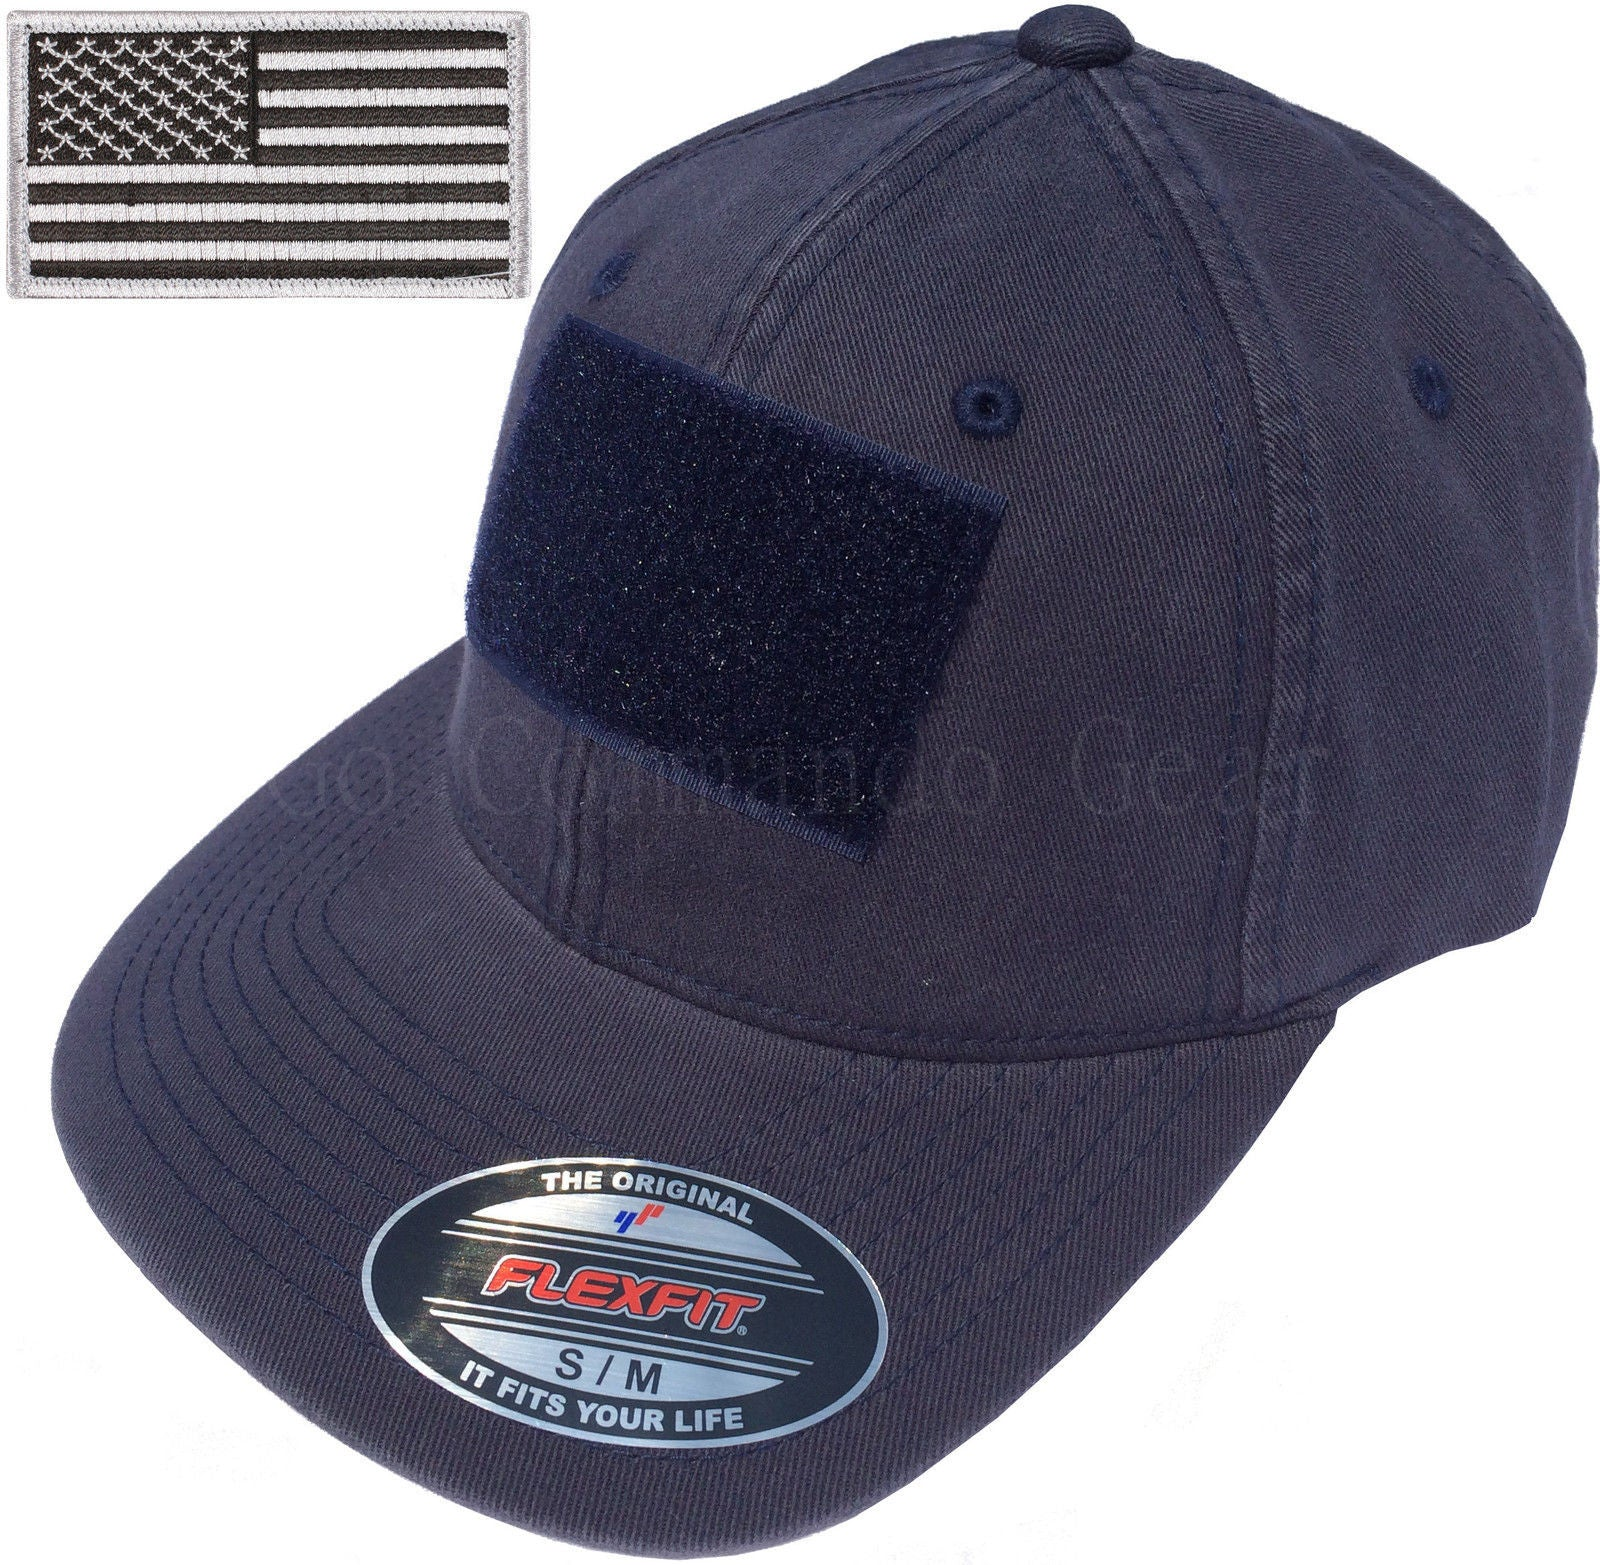 Flexfit Vintage Cotton Tactical Cap Hat w/ Patch Area